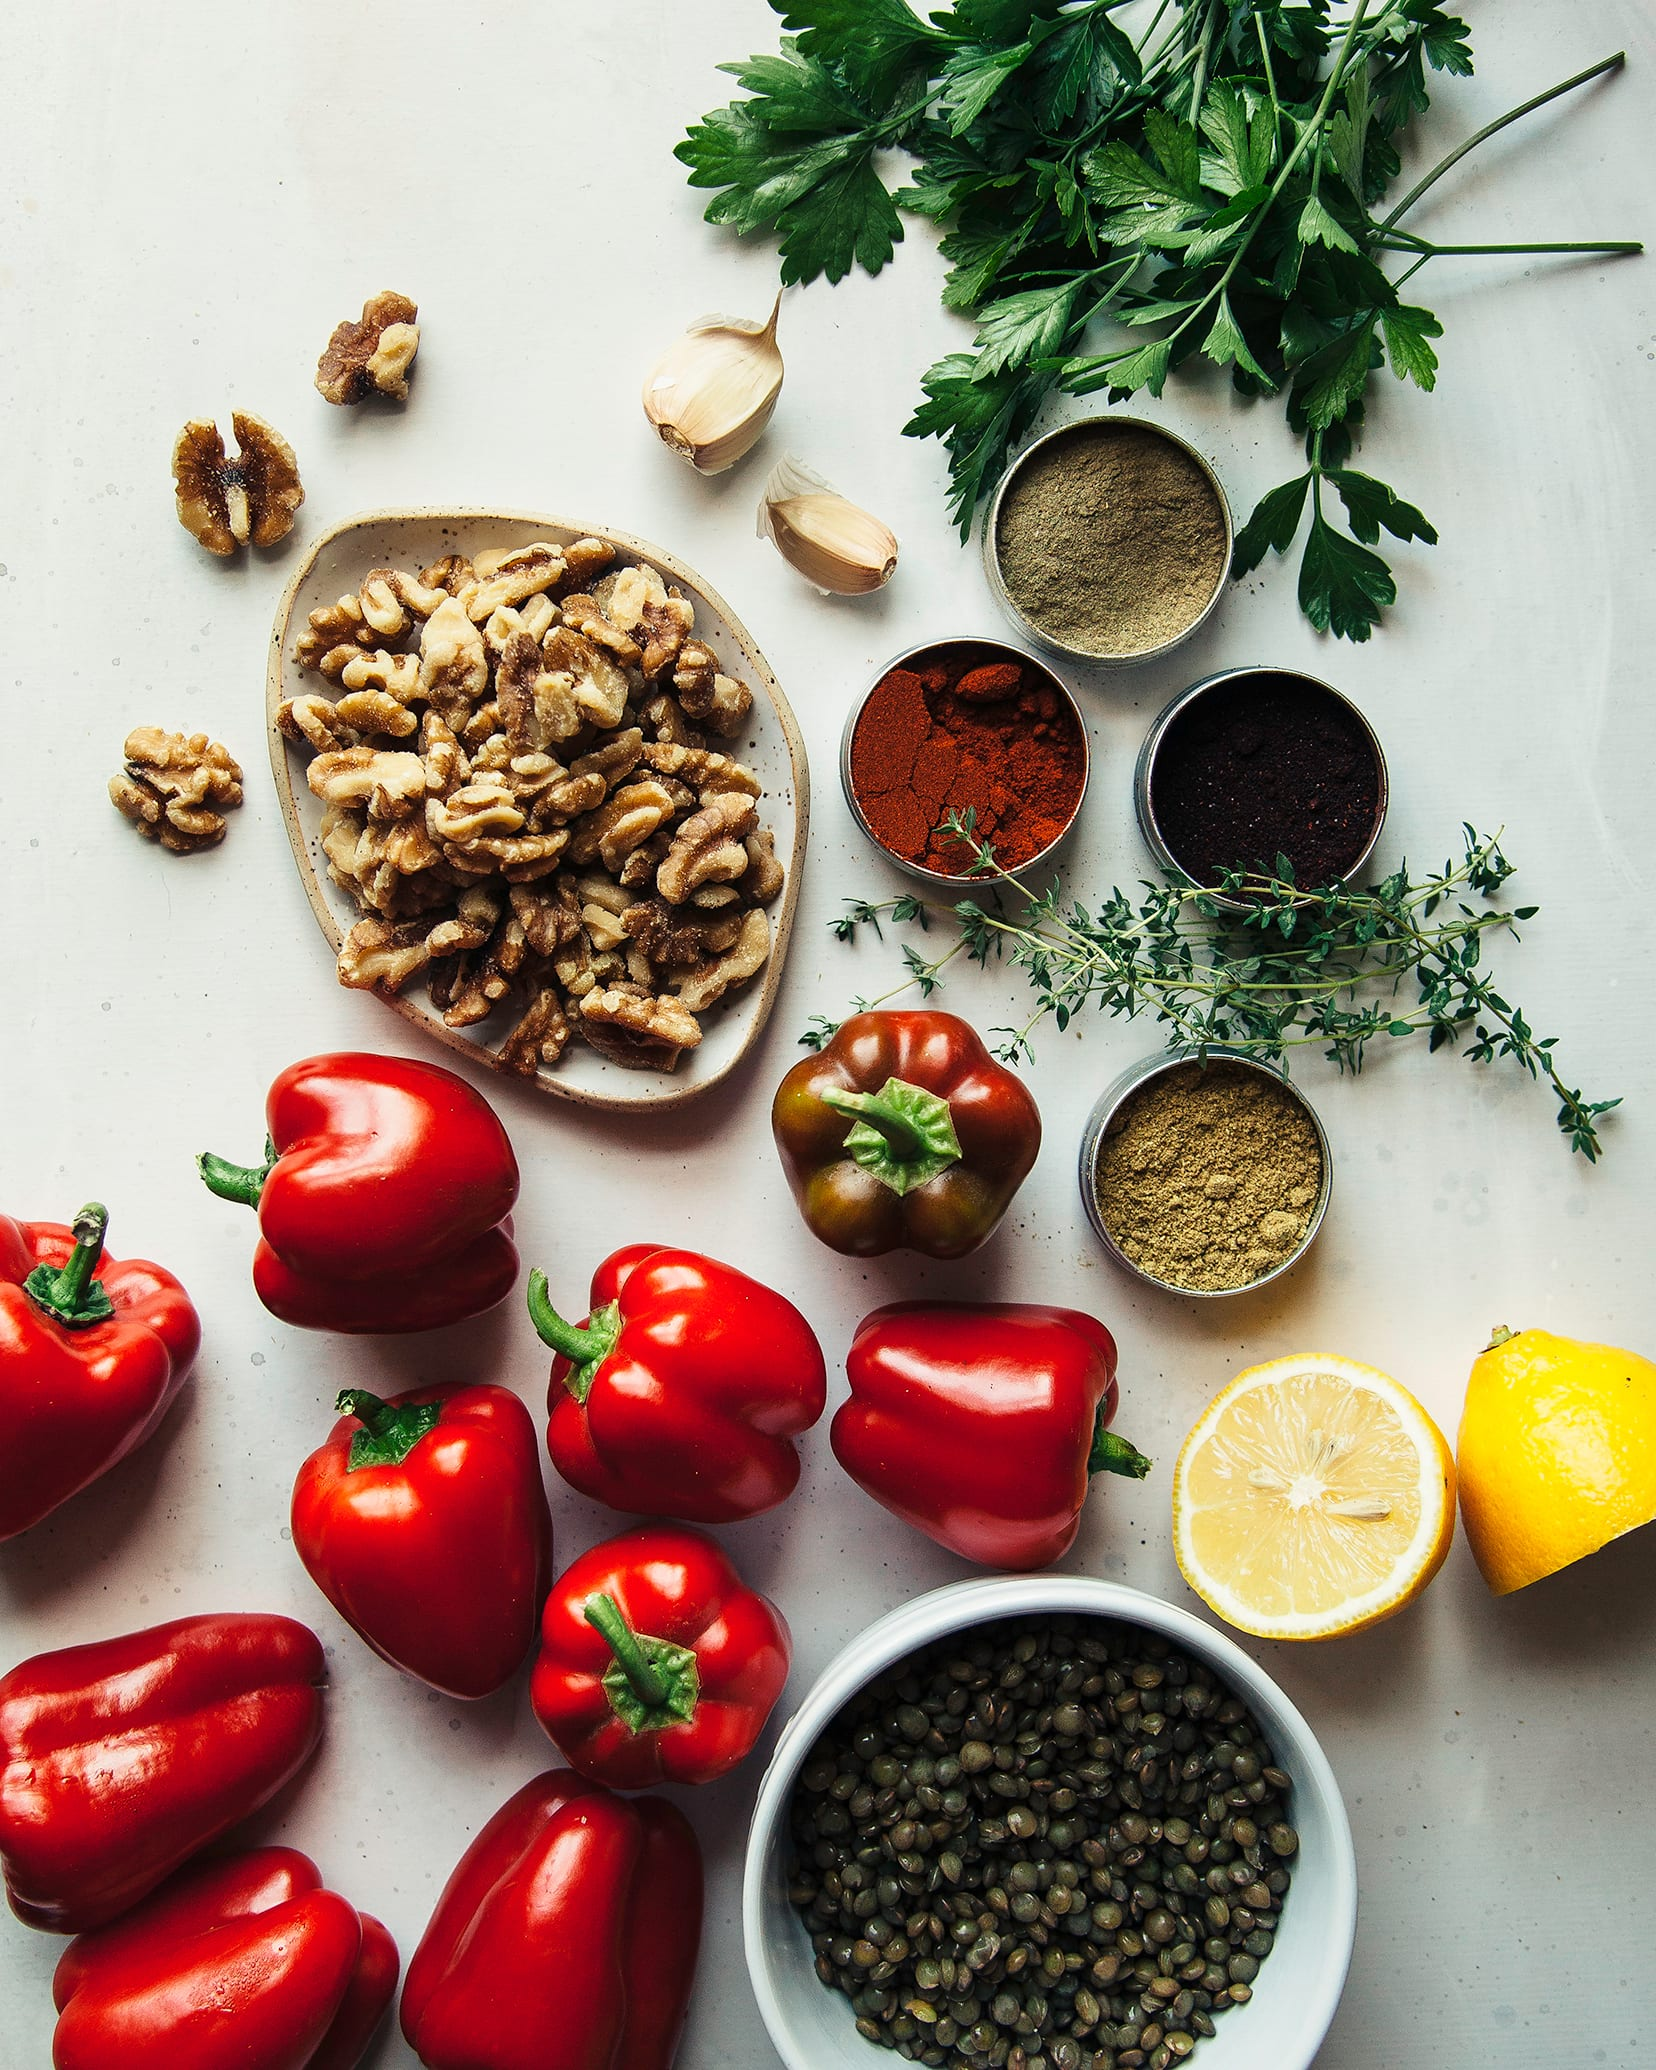 An overhead shot of ingredients for stuffed grilled mini peppers with lentil and walnut crumble.